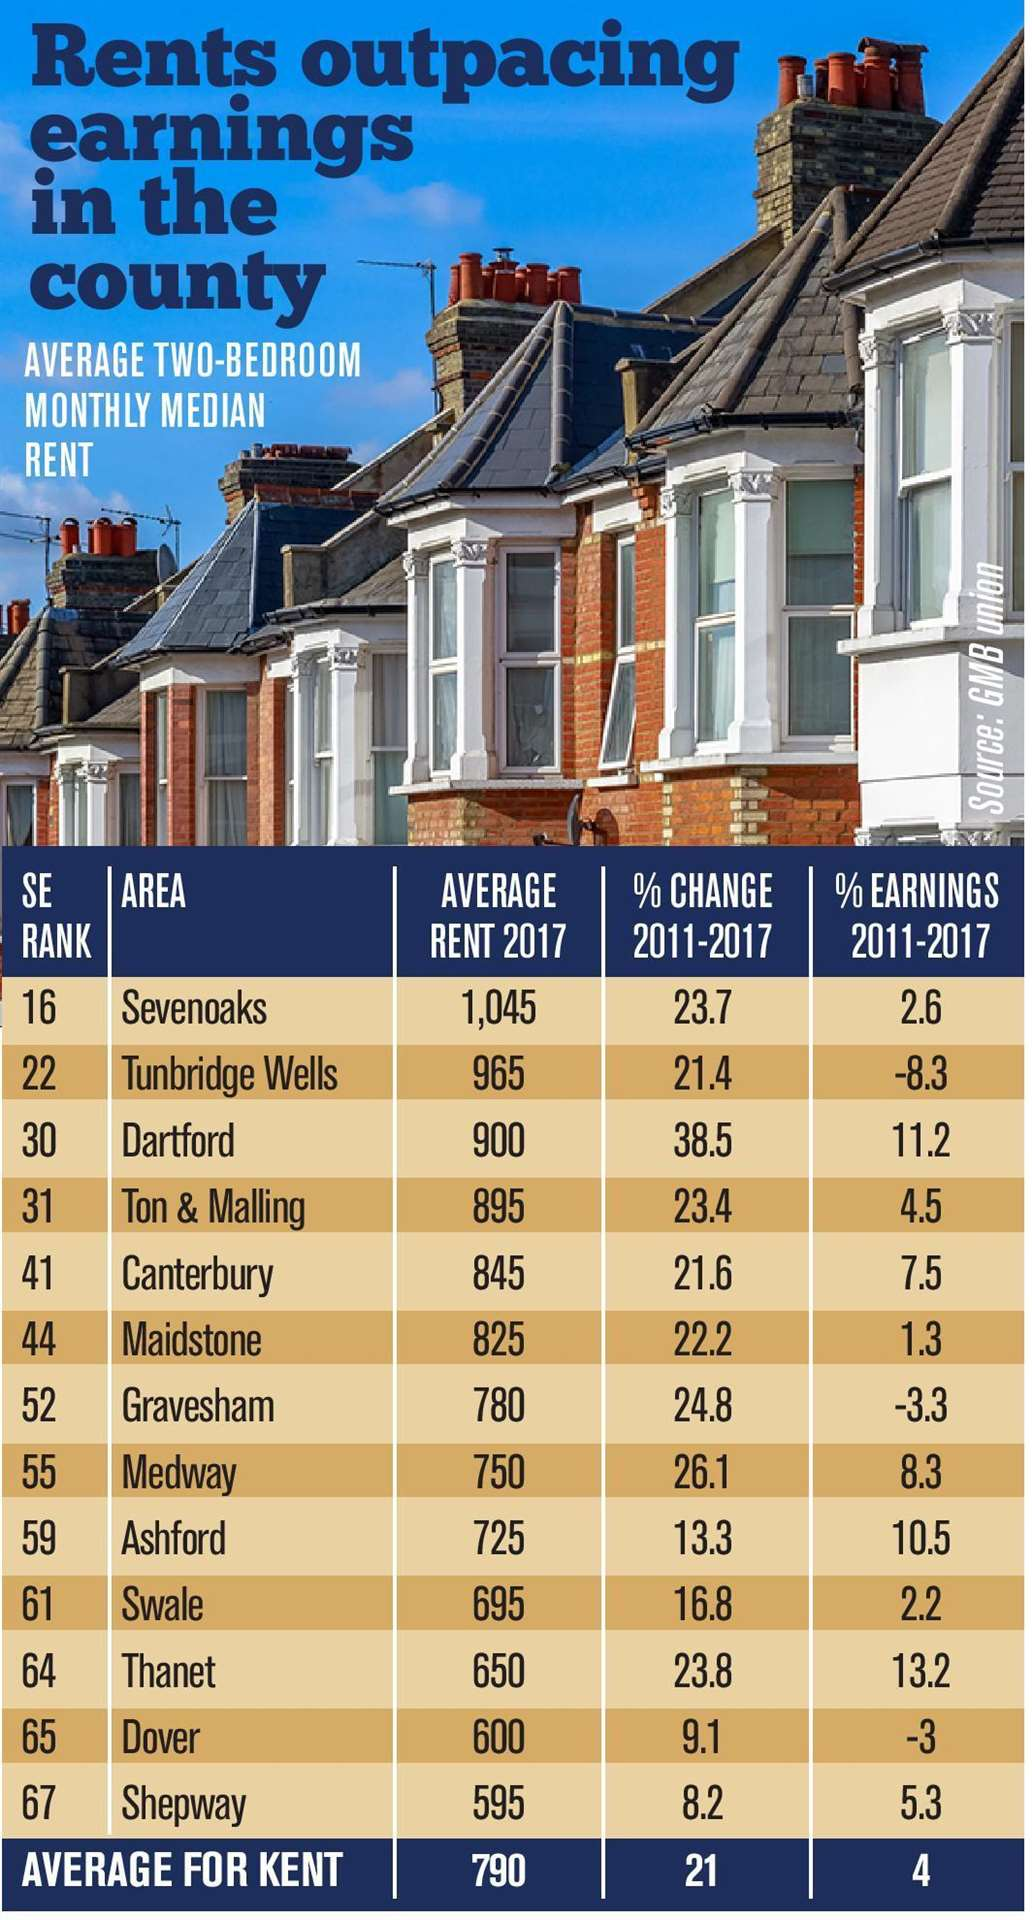 House rental statistics from GMB